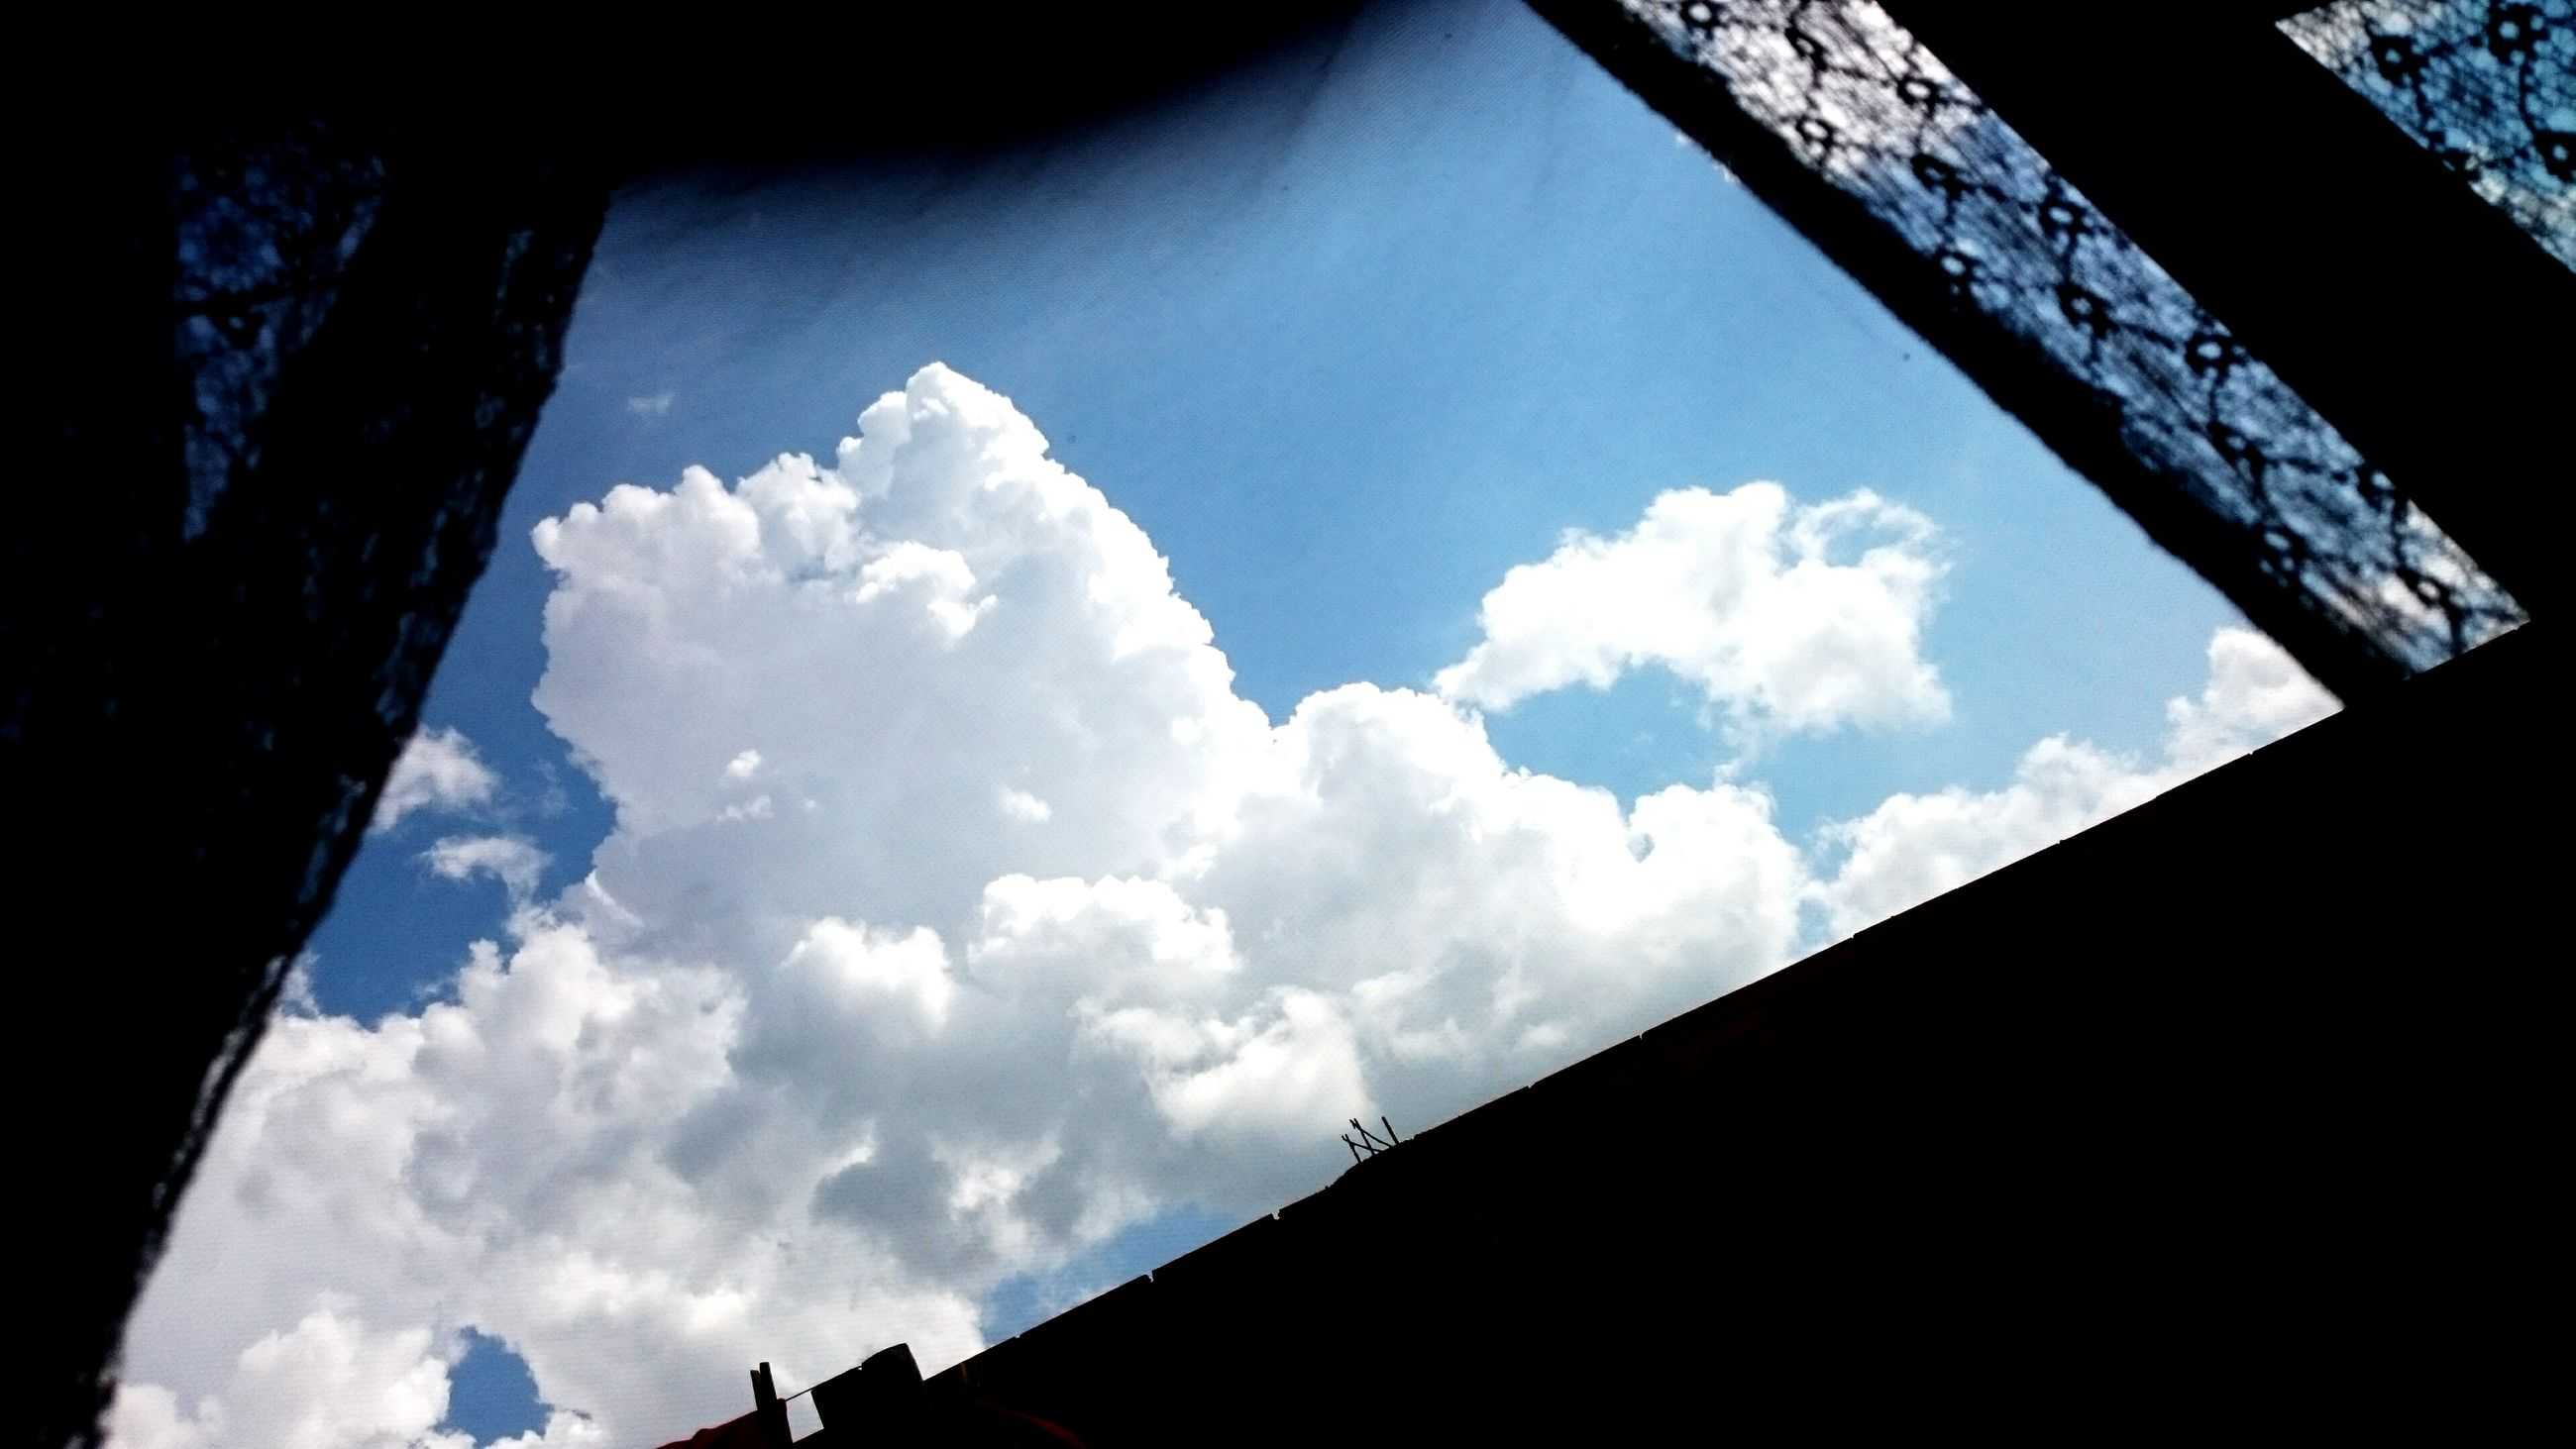 low angle view, sky, architecture, built structure, cloud - sky, building exterior, cloud, building, directly below, cloudy, day, window, no people, glass - material, outdoors, sunlight, silhouette, city, high section